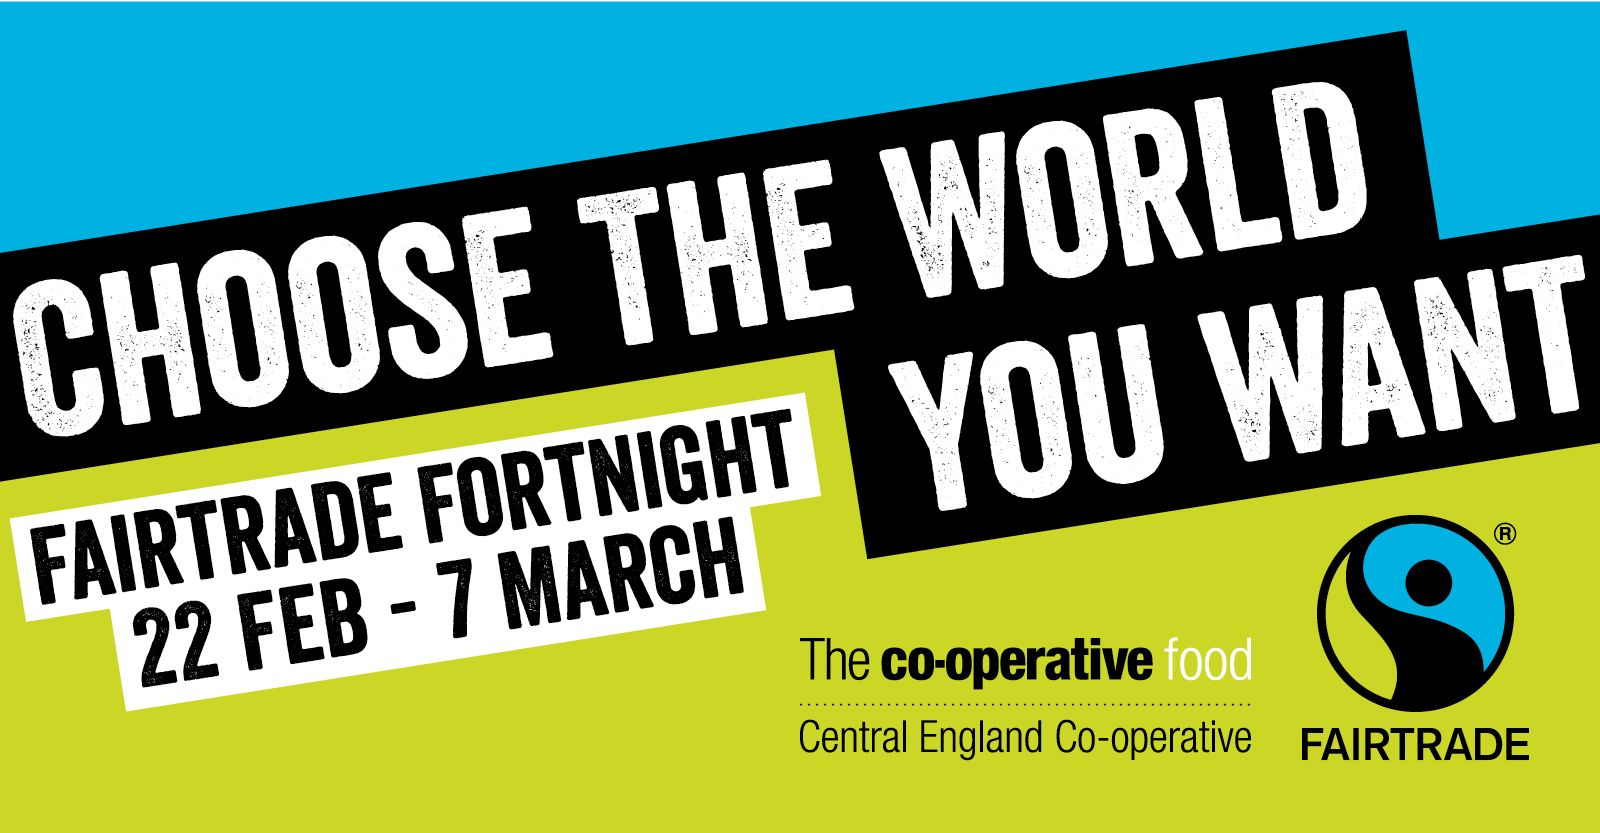 Thousands of children to be reached with Fairtrade message during Fairtrade Fortnight